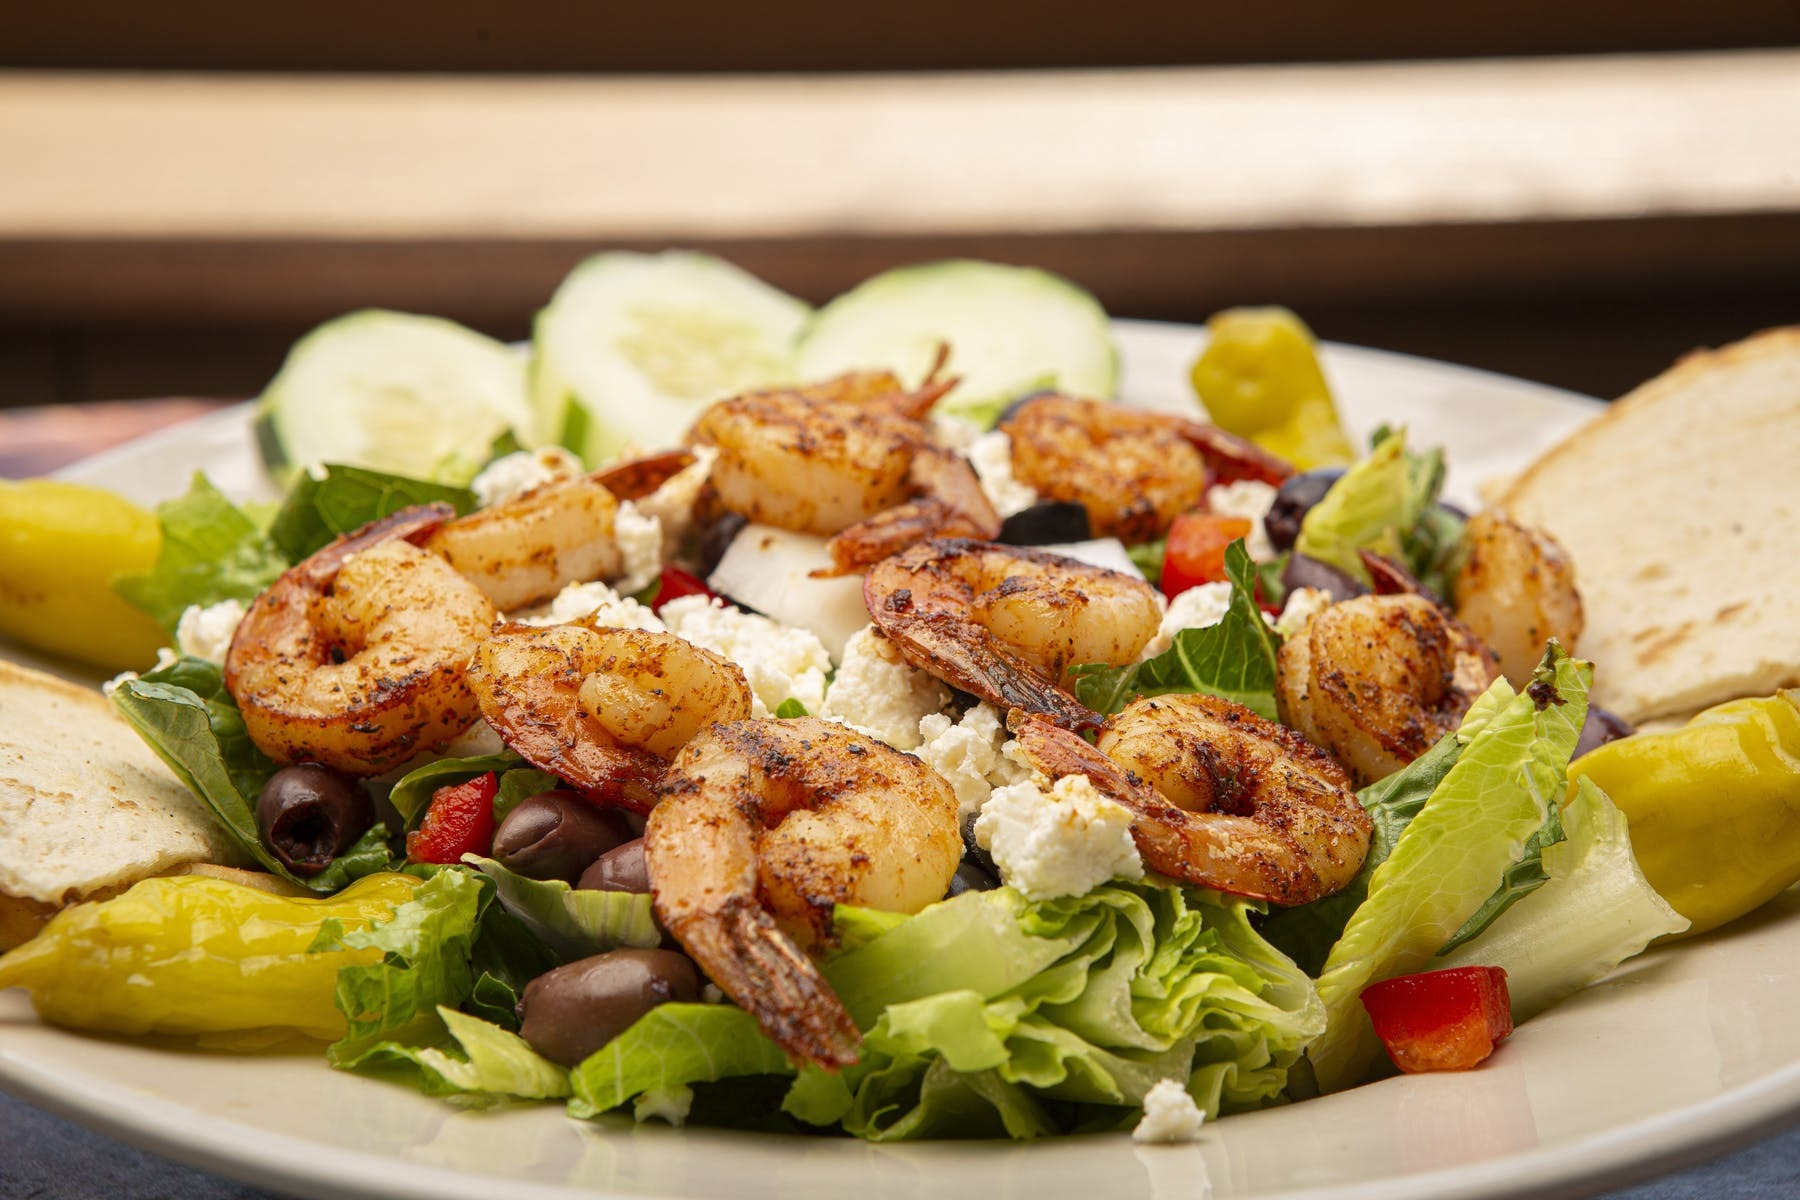 salad topped with grilled shrimp